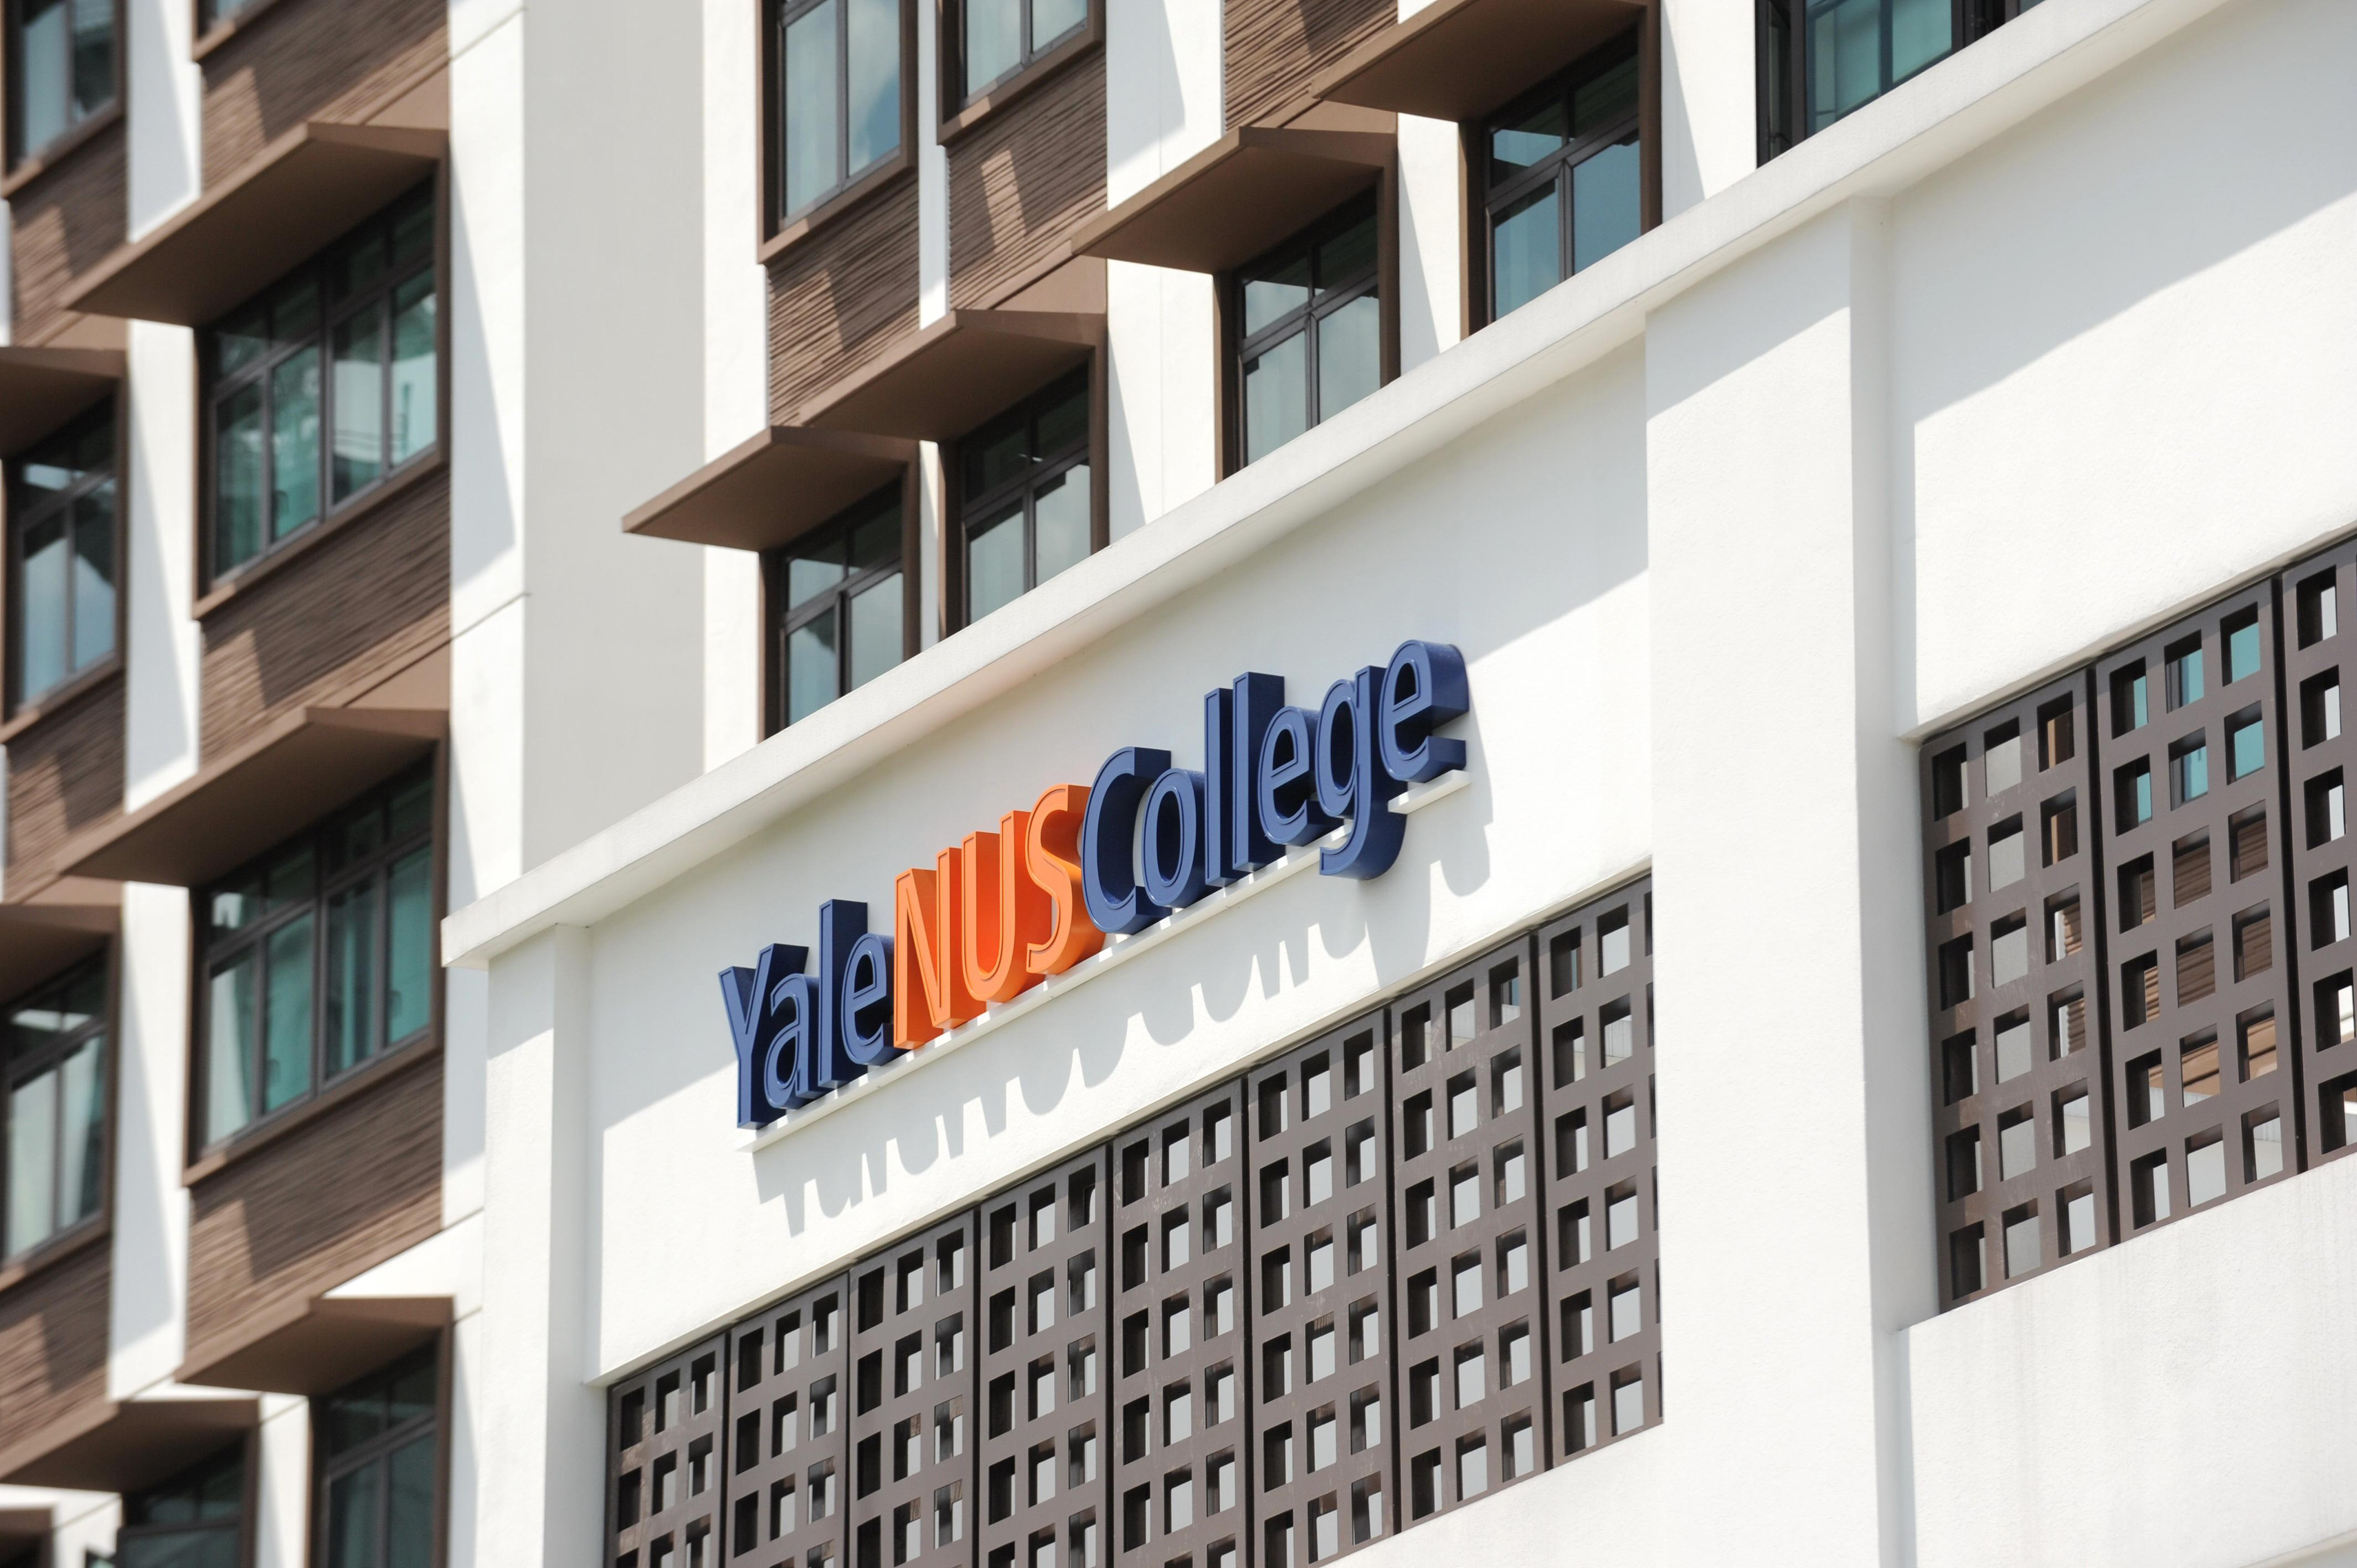 COMMENT: I blame Yale-NUS